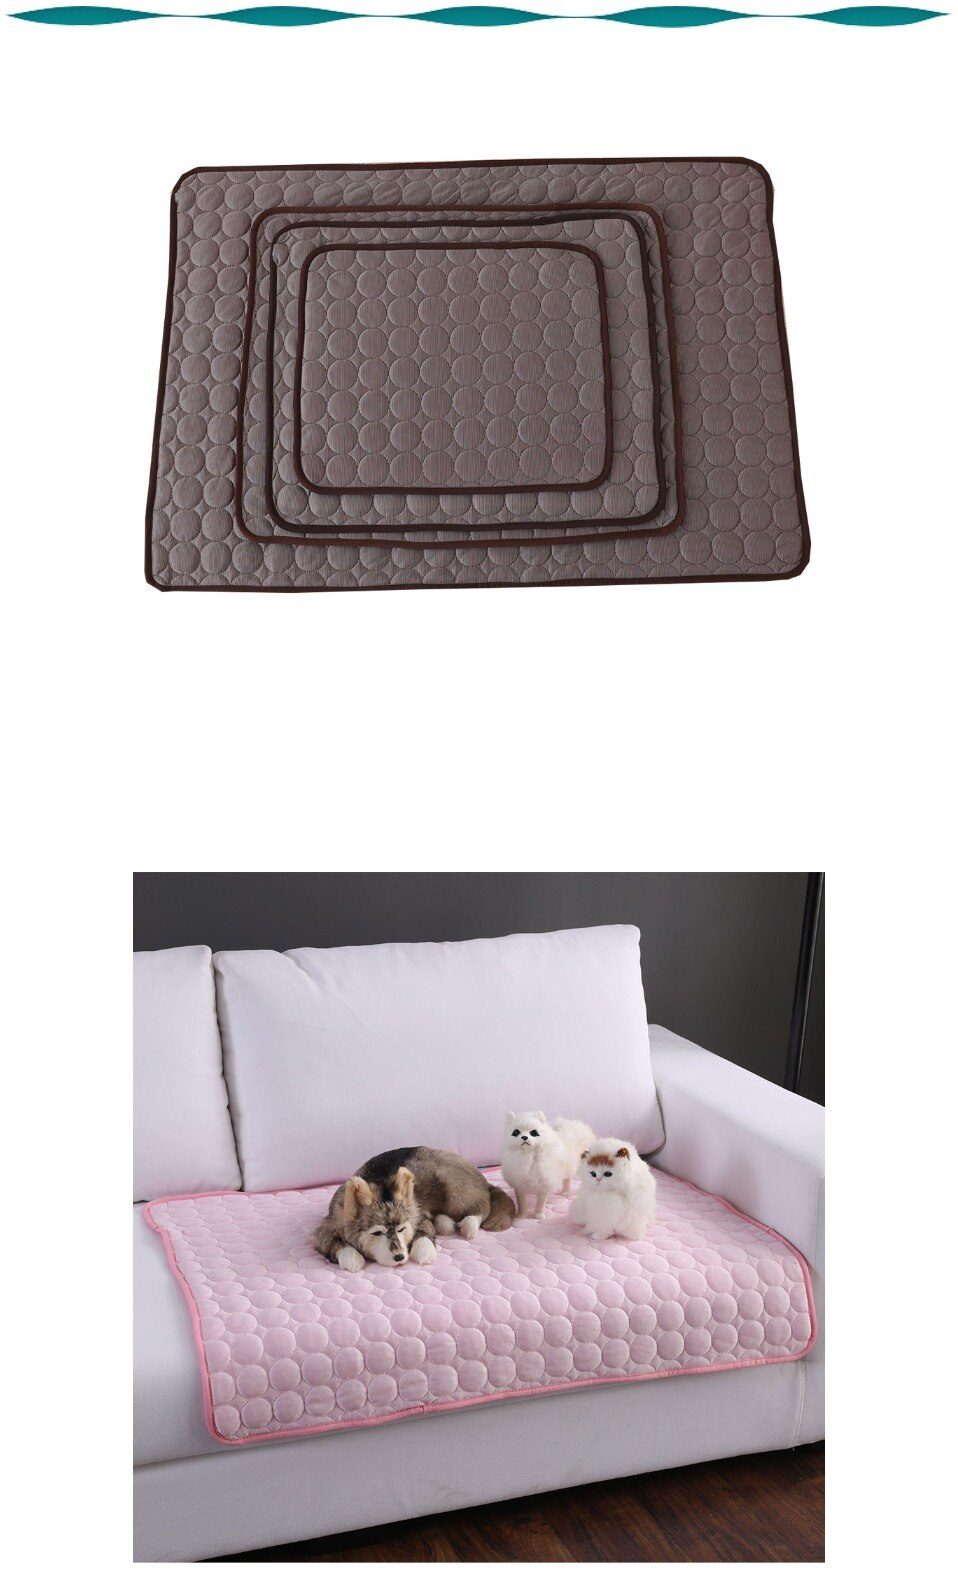 Dog Cooling Mat Washable Summer Cooling Pad Mat for Dogs Cat Breathable Pet Dog Bed Dogs Car Seat Cover Small Dog House